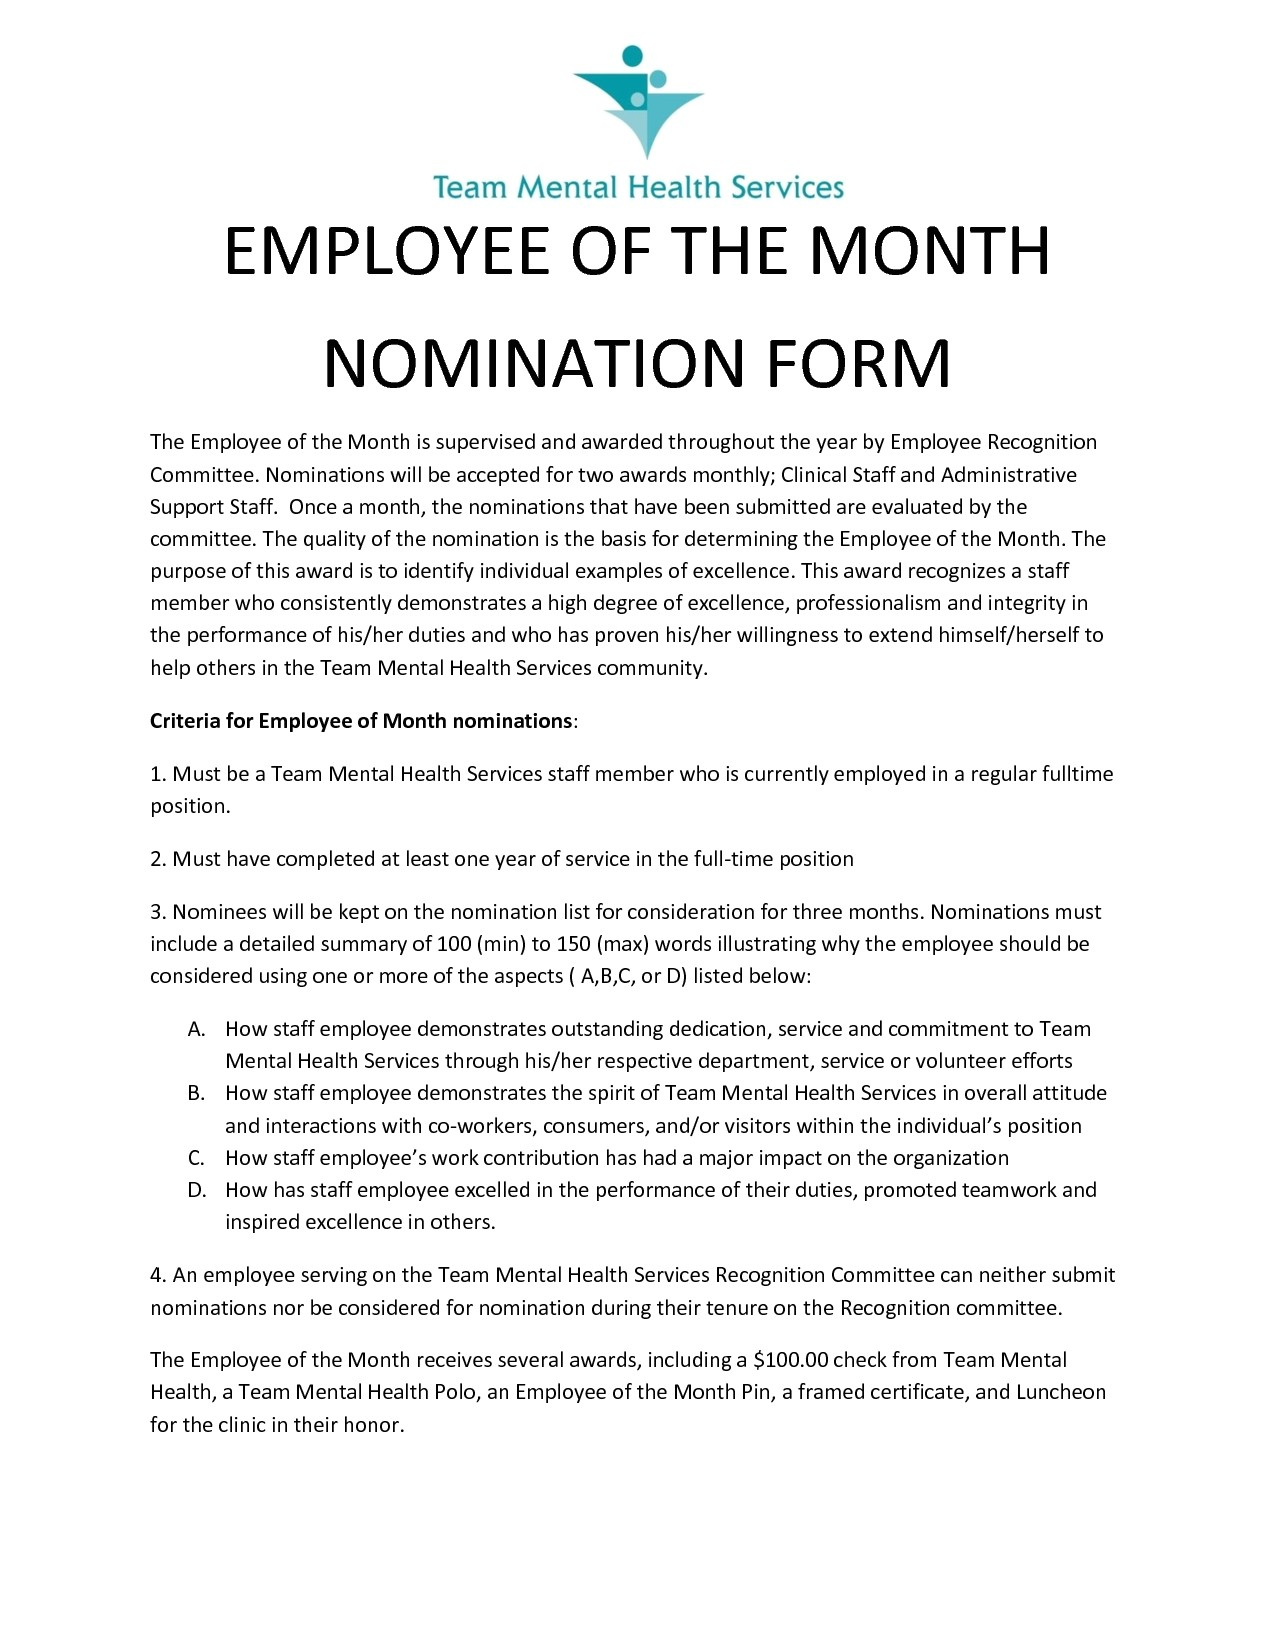 employee of the month nomination form design